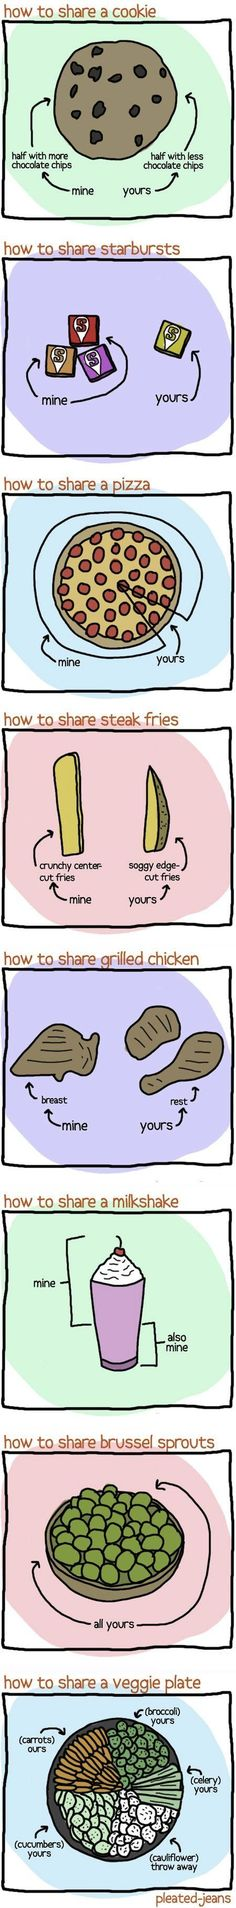 How to share things. Made me giggle :)